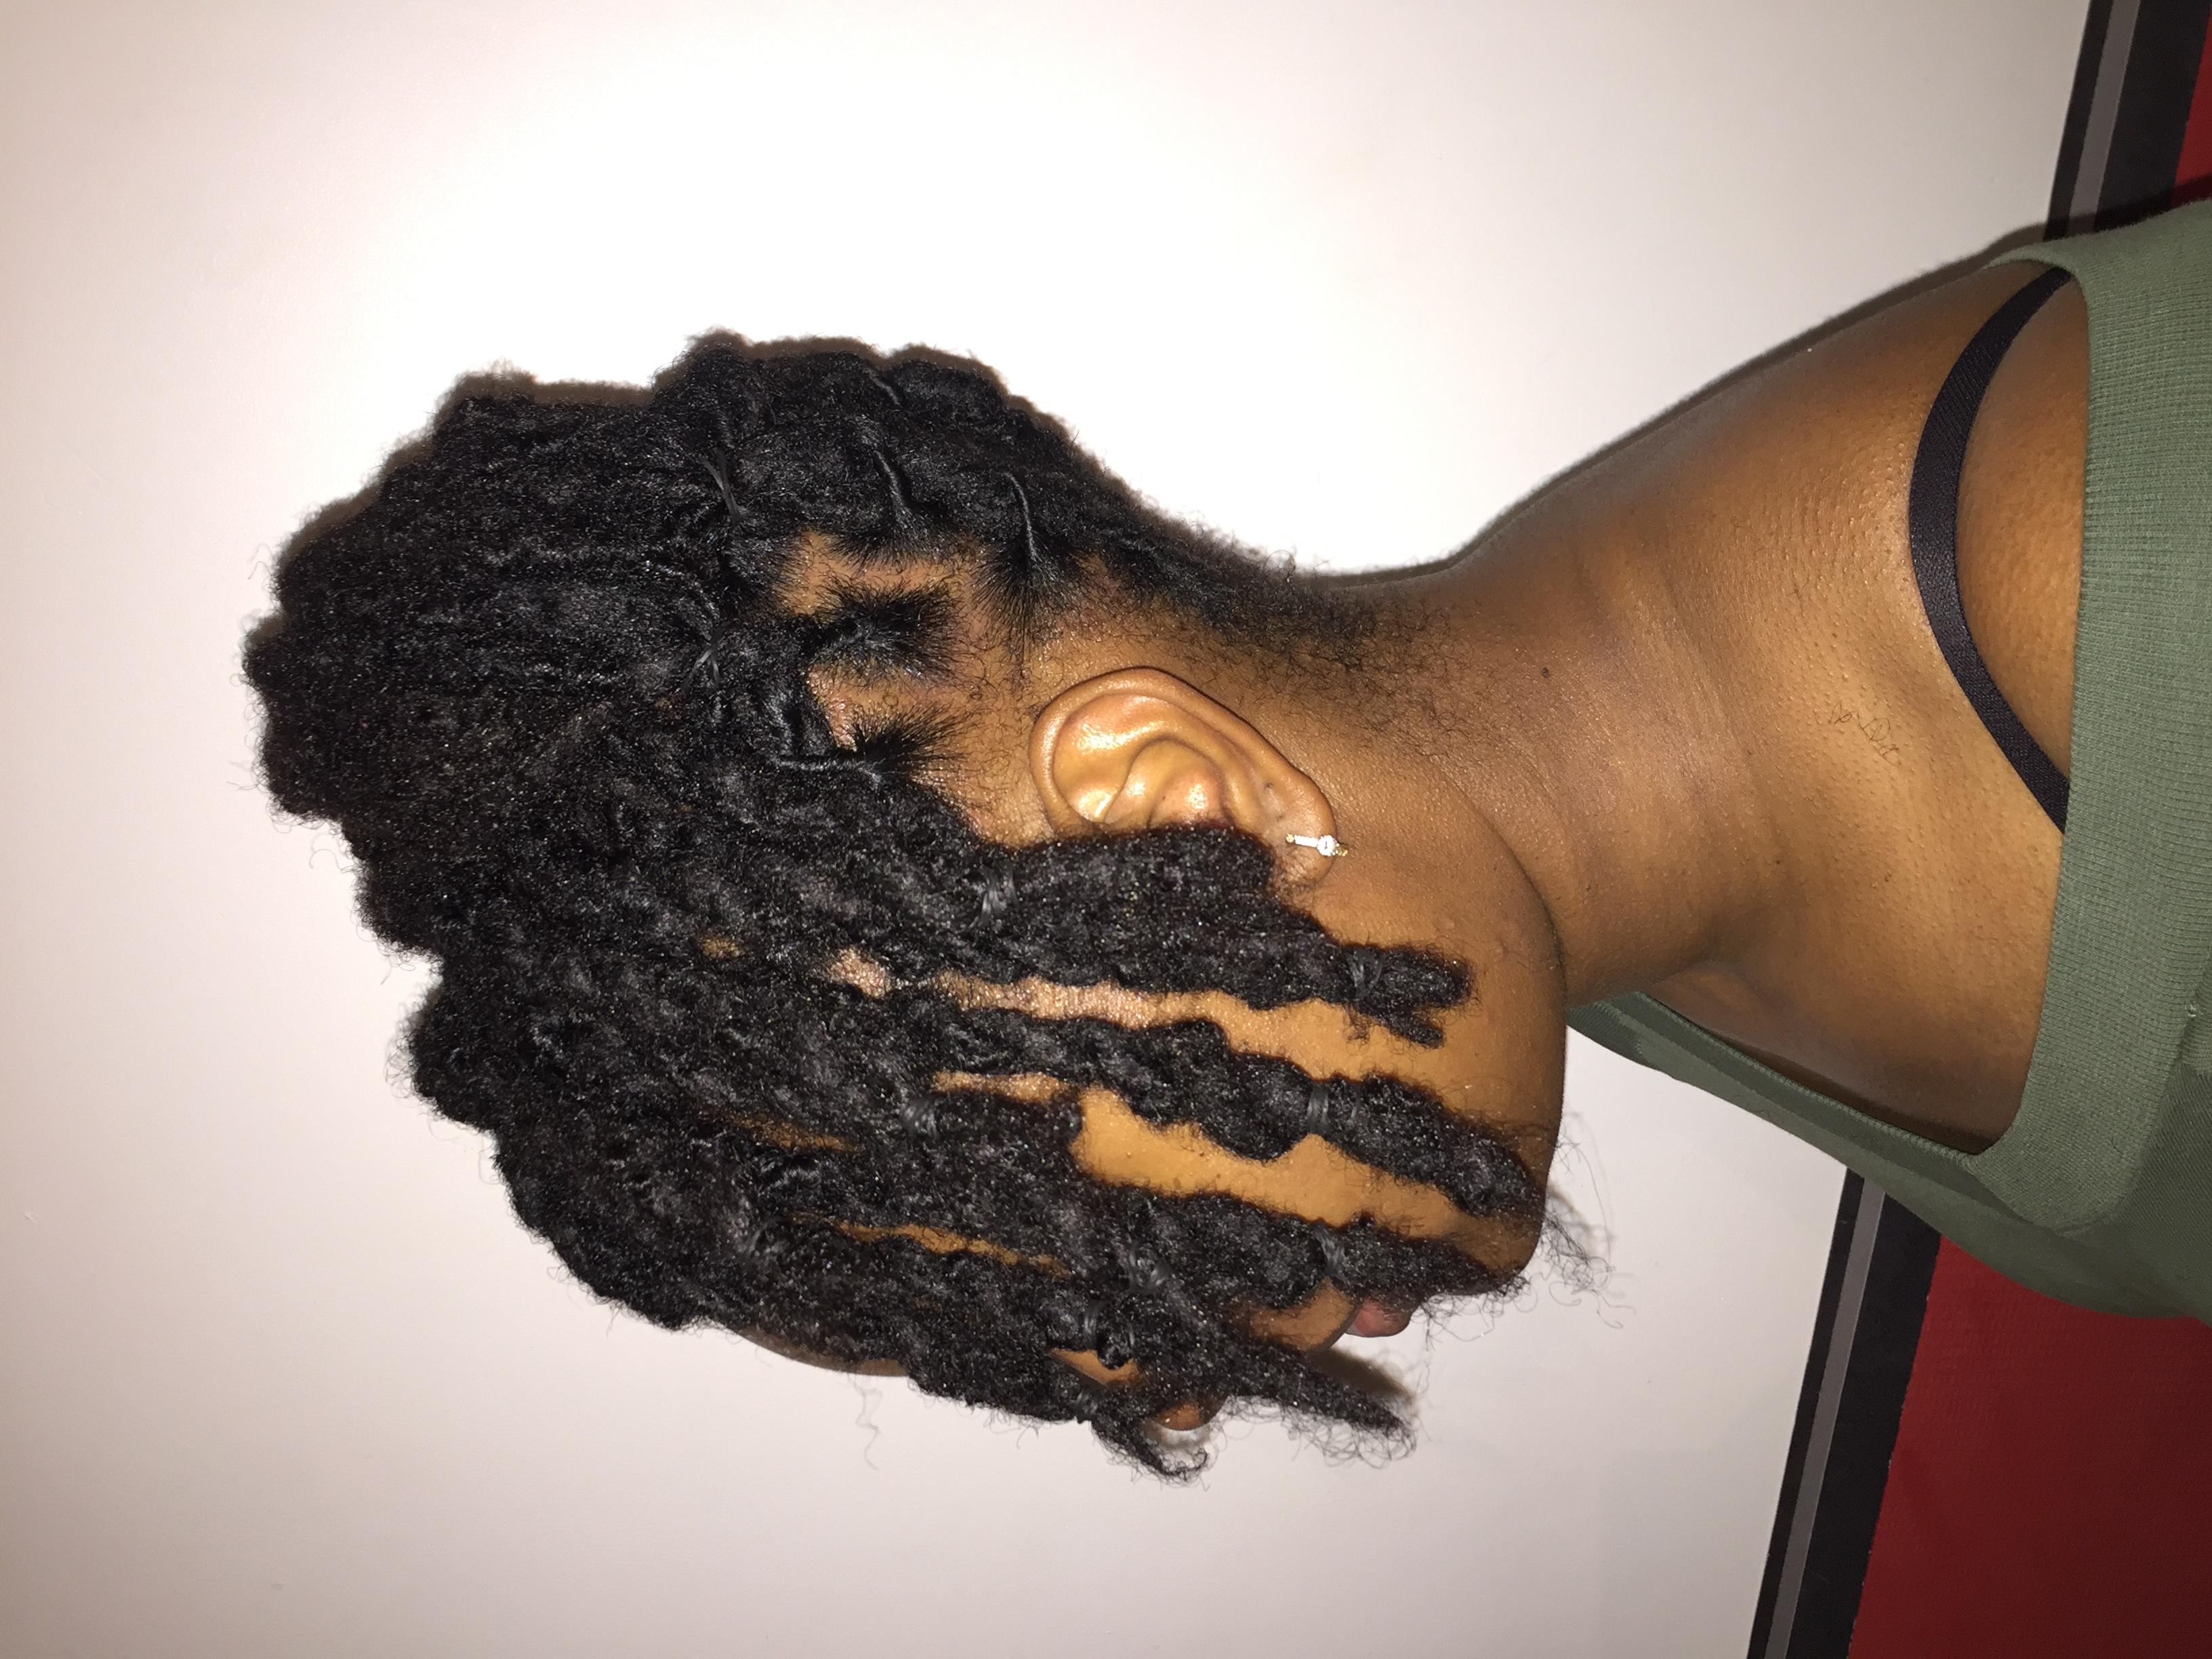 salon de coiffure afro tresse tresses box braids crochet braids vanilles tissages paris 75 77 78 91 92 93 94 95 DYSMUYKT